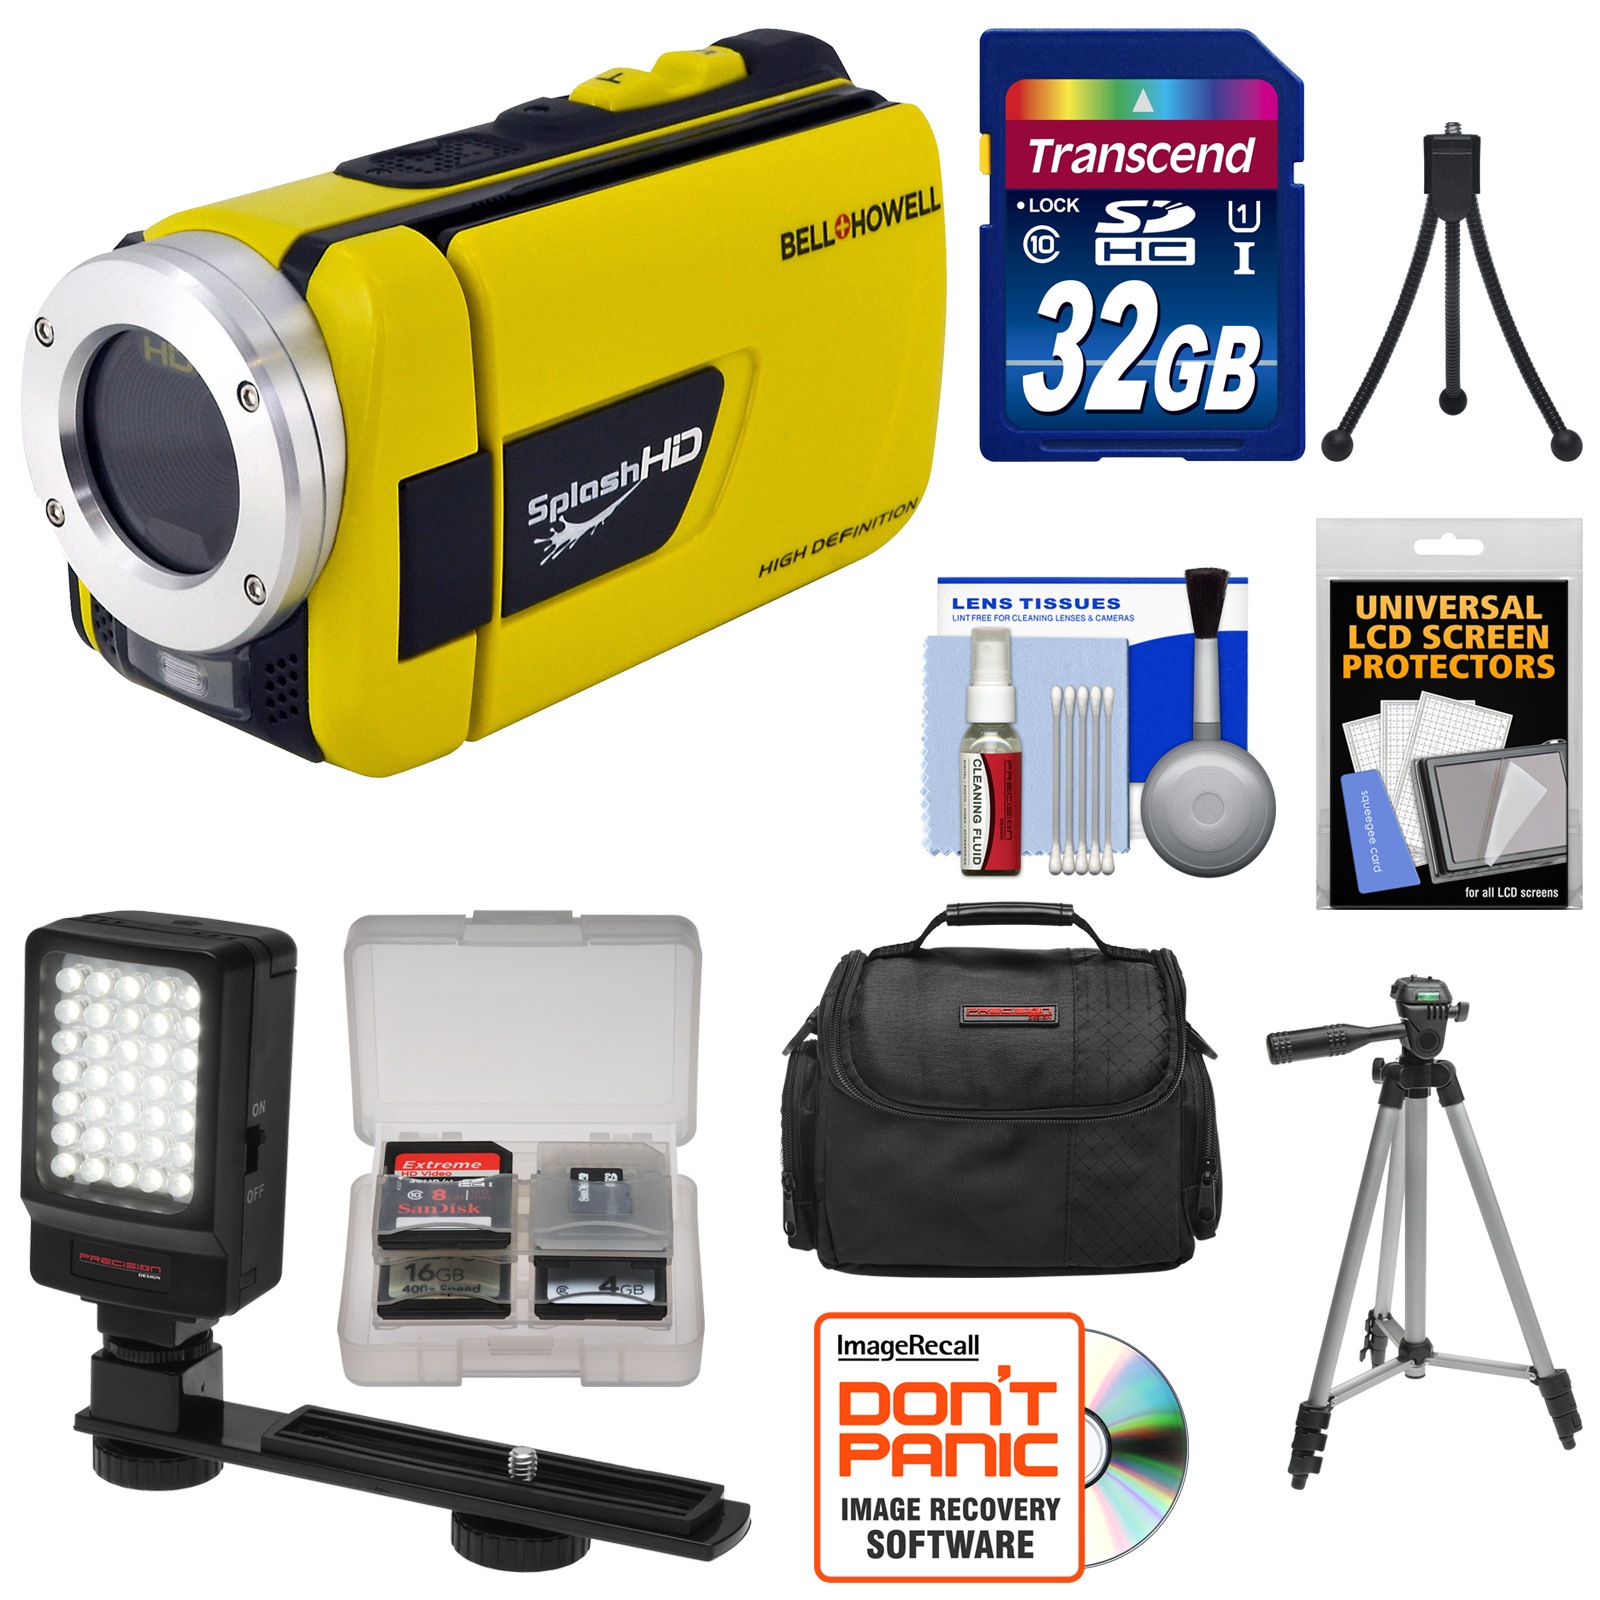 Bell & Howell Splash HD WV30 Waterproof Digital Video Camera Camcorder (Yellow) with 32GB Card + Case + LED Light & Bracket + Tripods + Accessory Kit